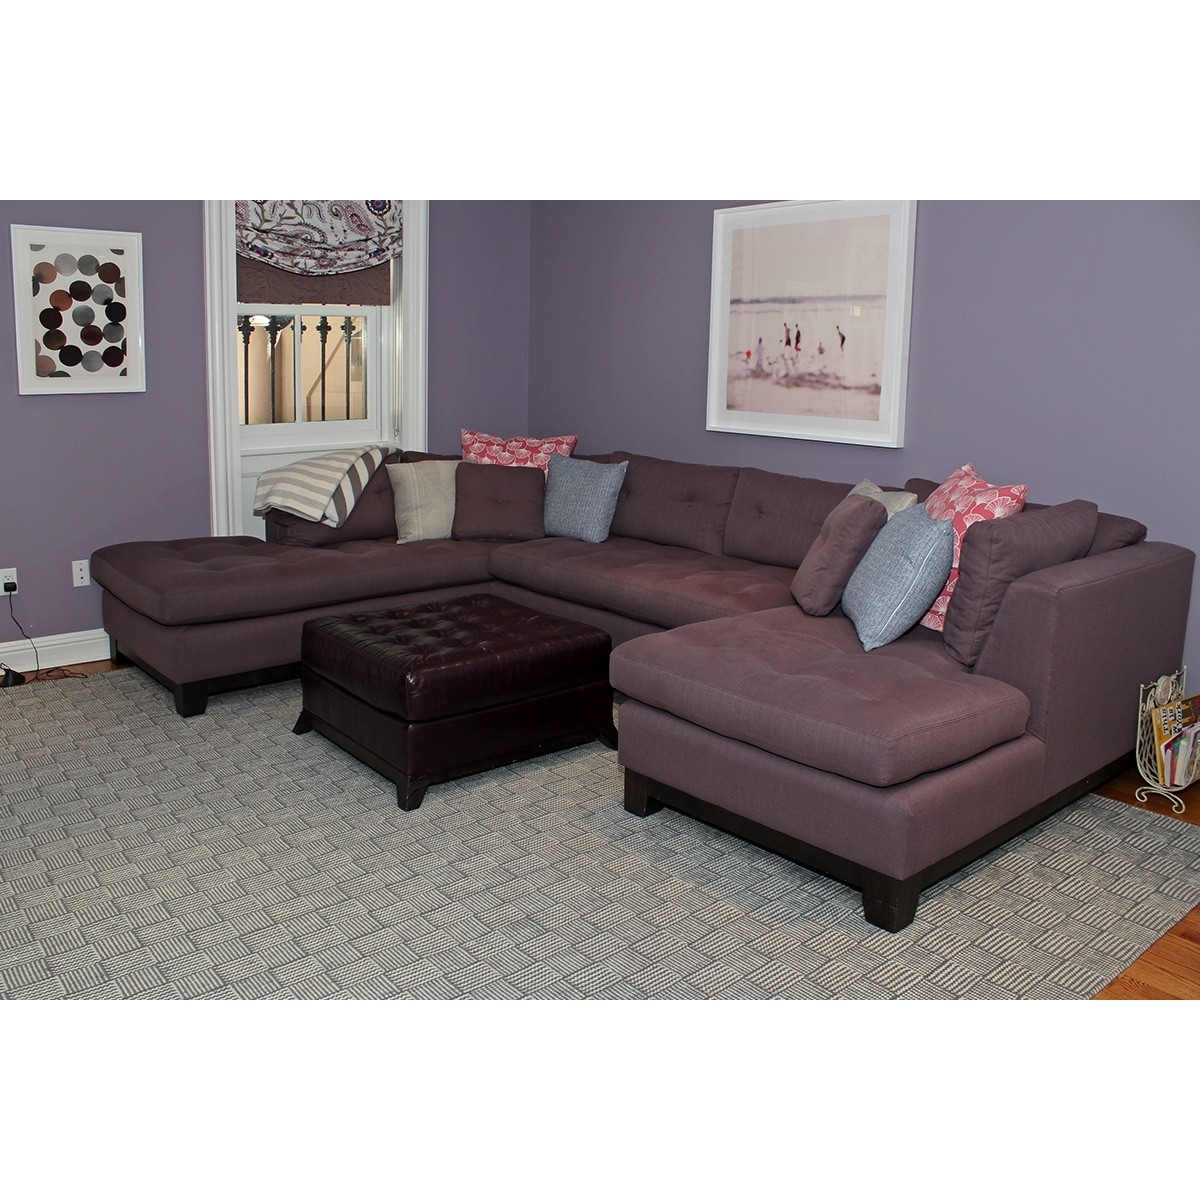 The Most Popular Mccreary Sectional Sofa 59 On Sectional Sofas San With San Francisco Sectional Sofas (View 7 of 10)